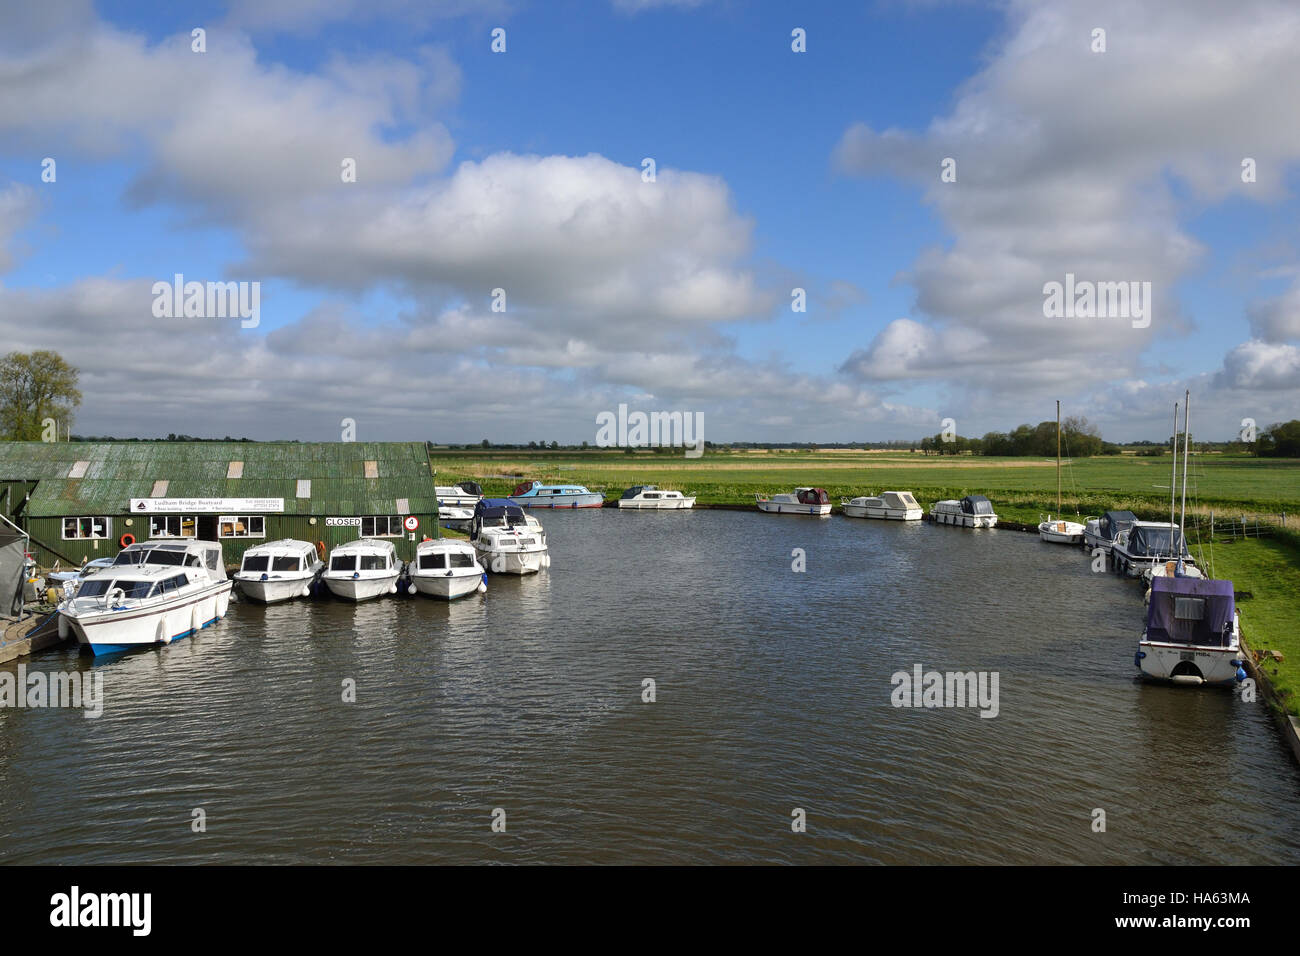 Boats moored at Ludham Bridge Boatyard on the River Ant on the Norfolk Broads. Stock Photo